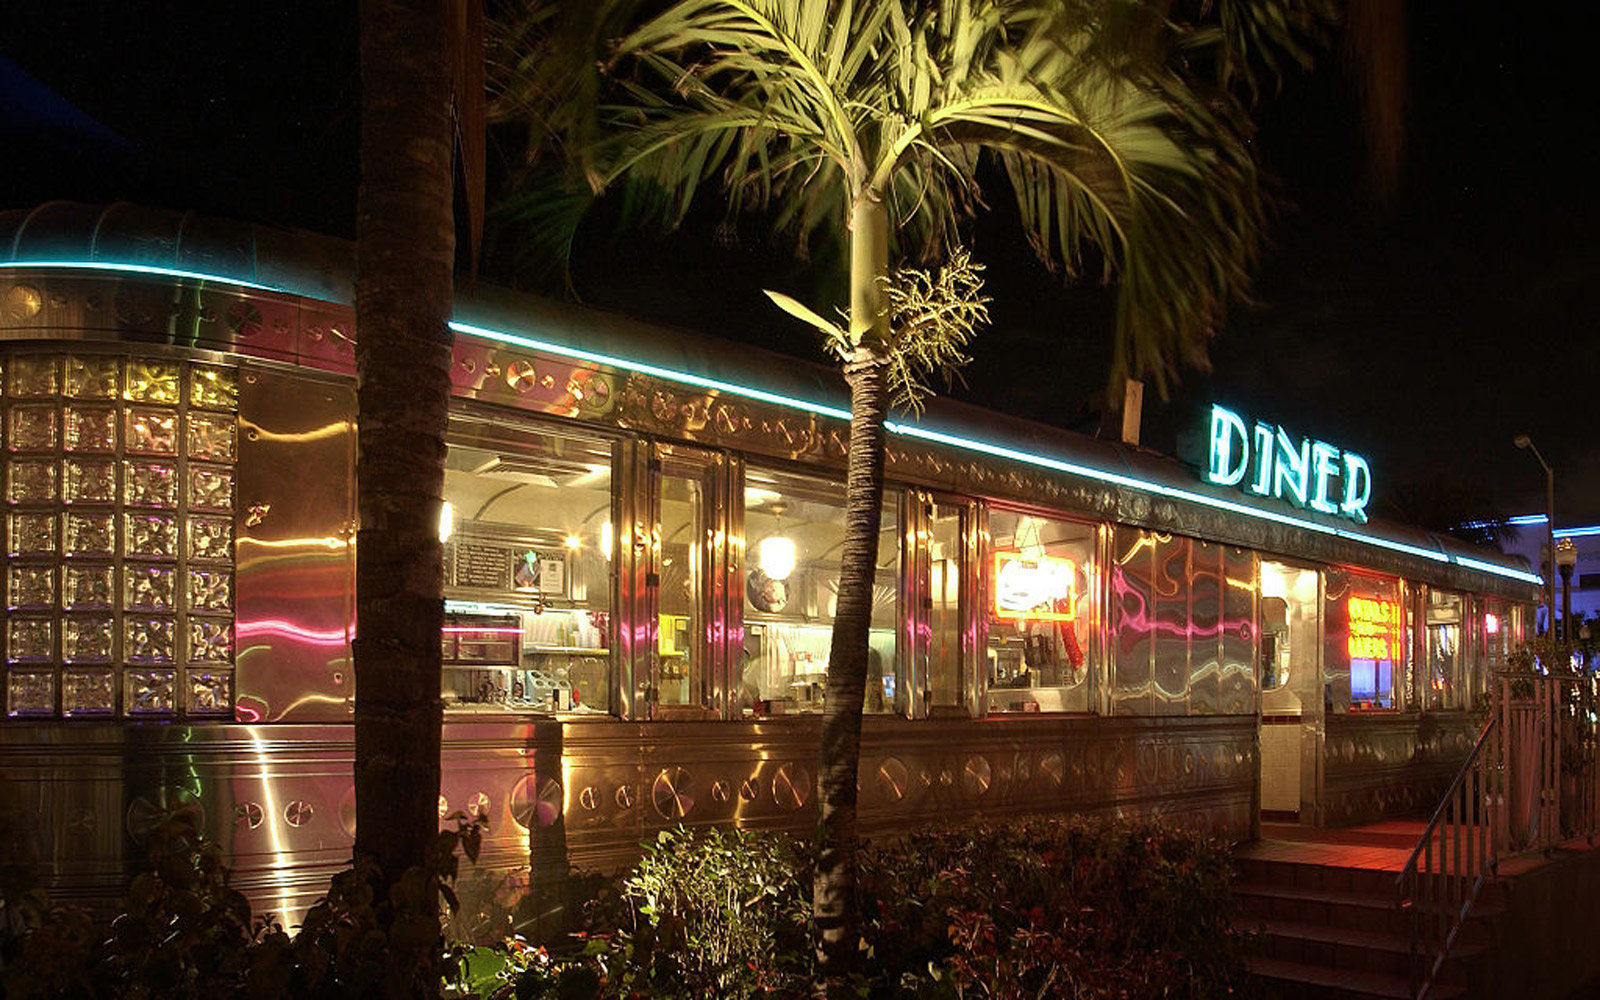 clone-11th-street-diner-SOUTHDINERS1017.jpg